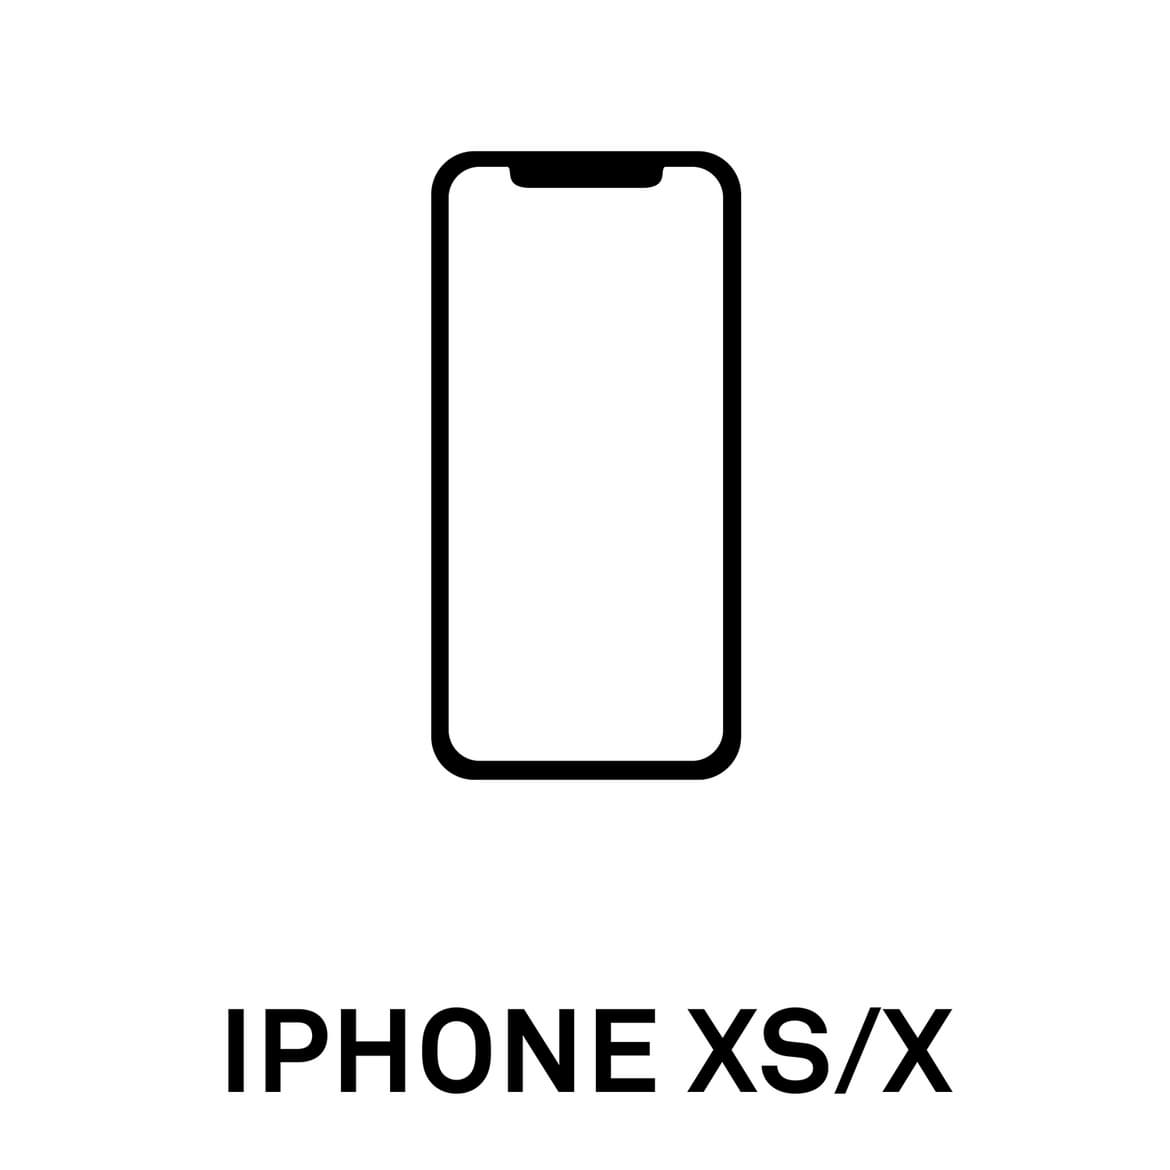 icon_iphone_xs_x.png